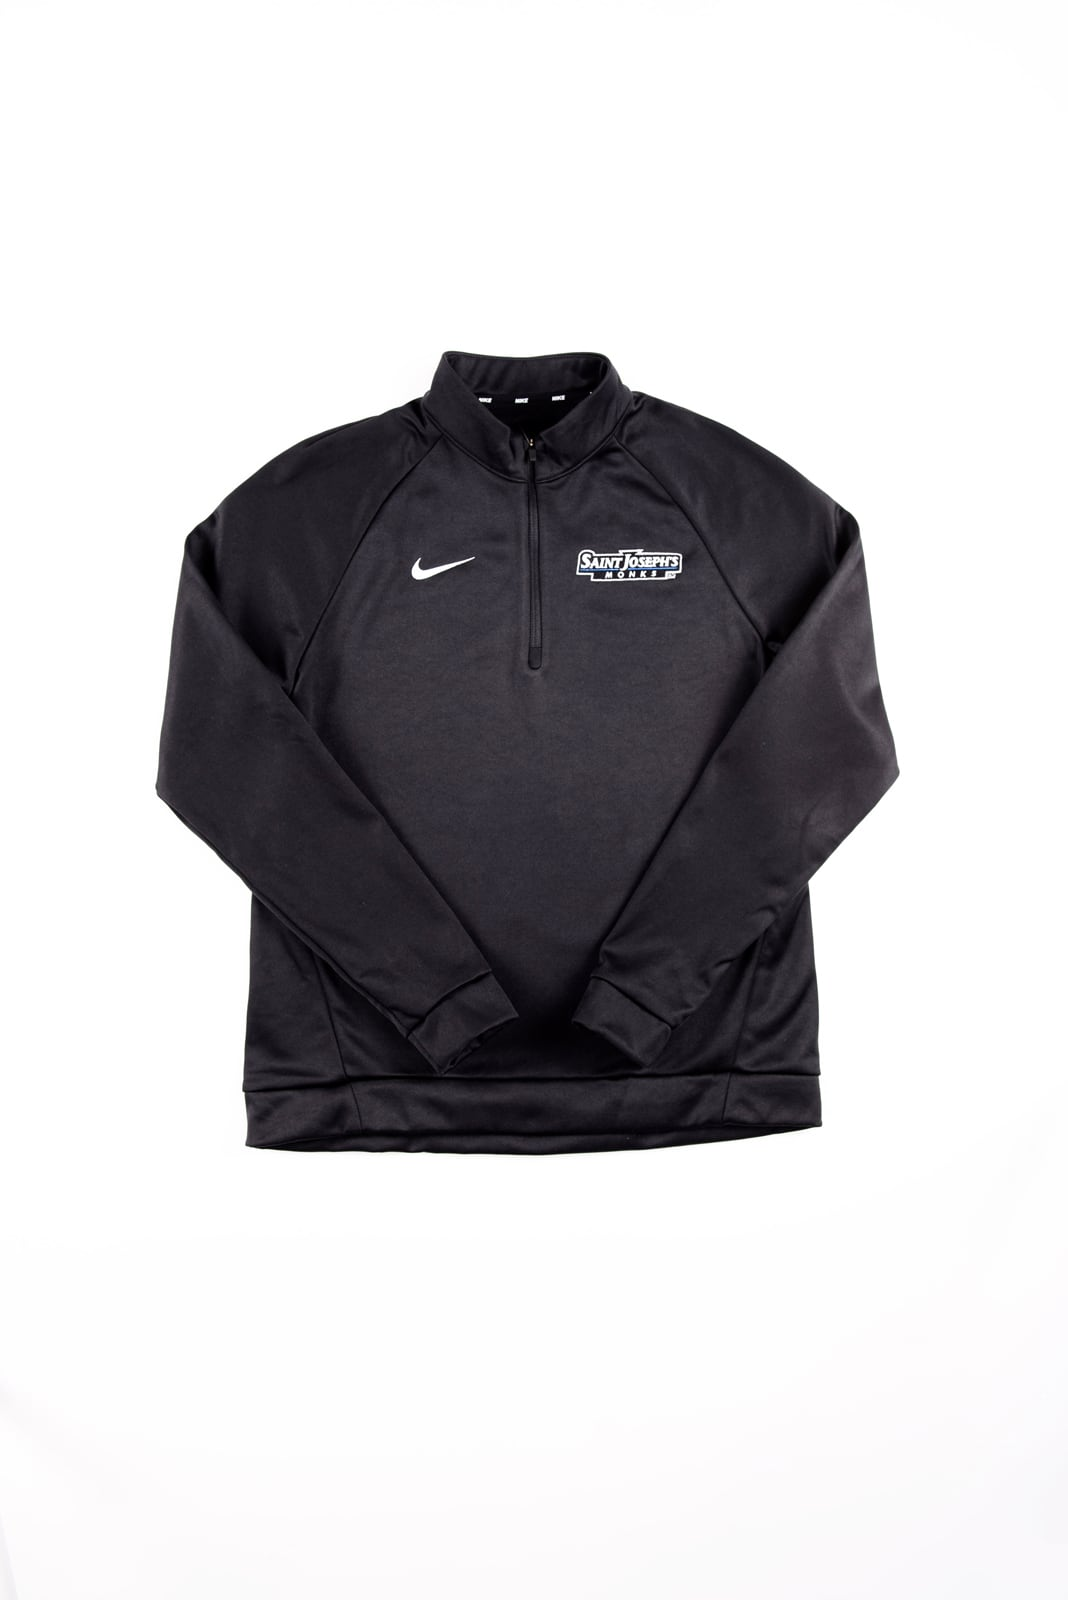 Black Women's Nike Dri-Fit Training Quarter Zip